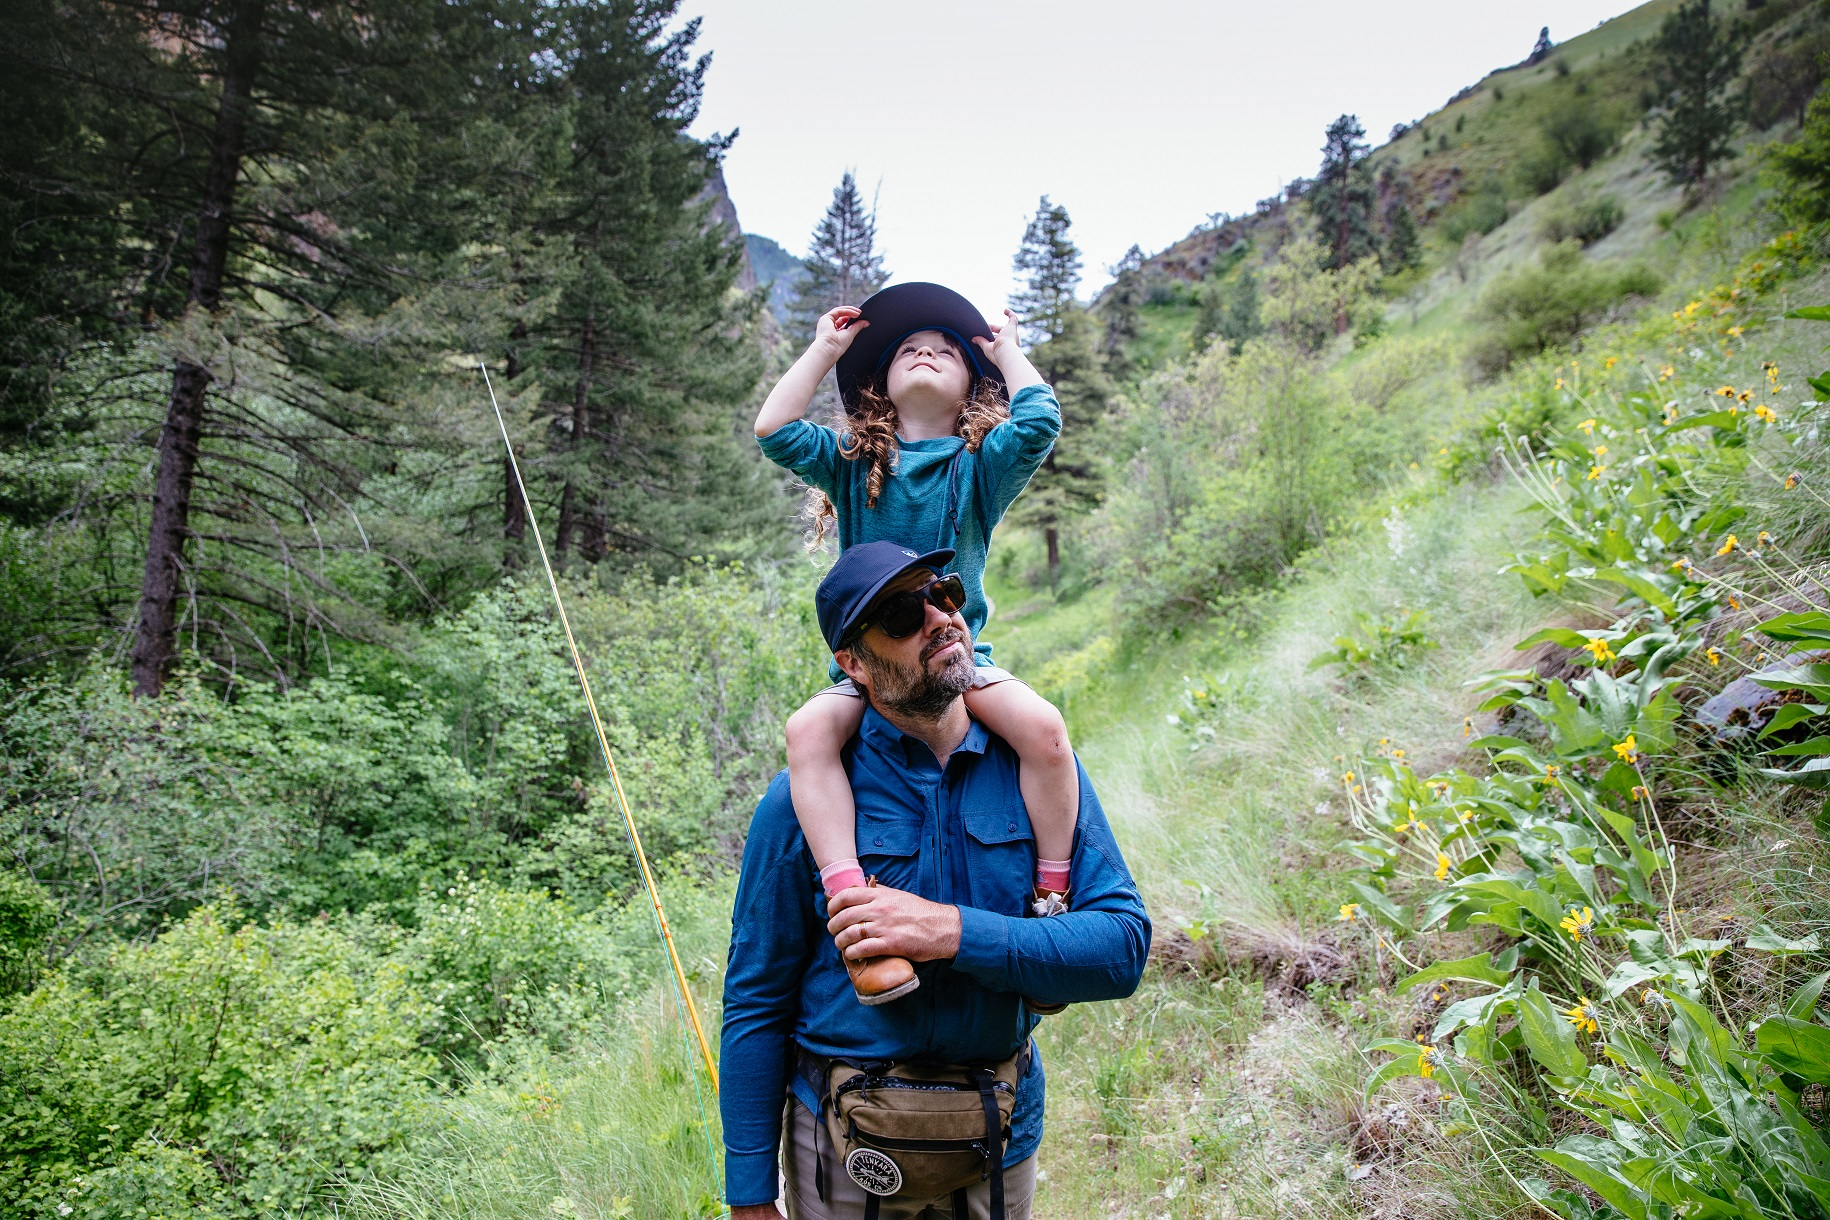 man in KÜHL shirt and KÜHL hat carrying daughter on his shoulders